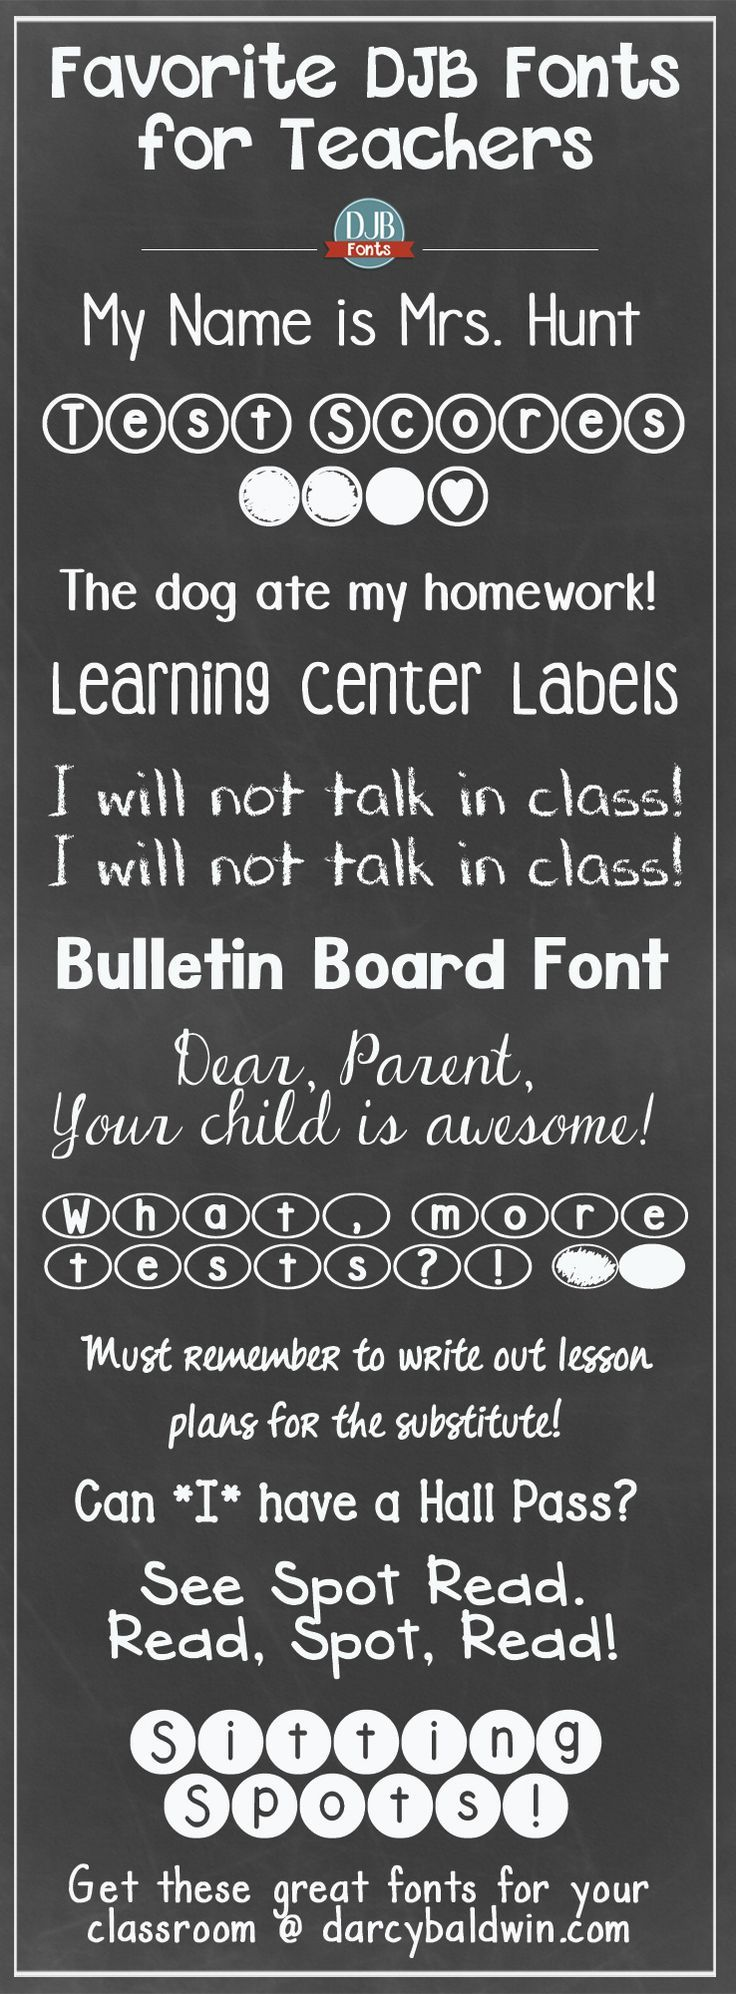 "Back to School is just around the corner!! Here are some free ""for the classroom"" fonts for teachers from DJB Fonts. Which is your favorite teacher font?"